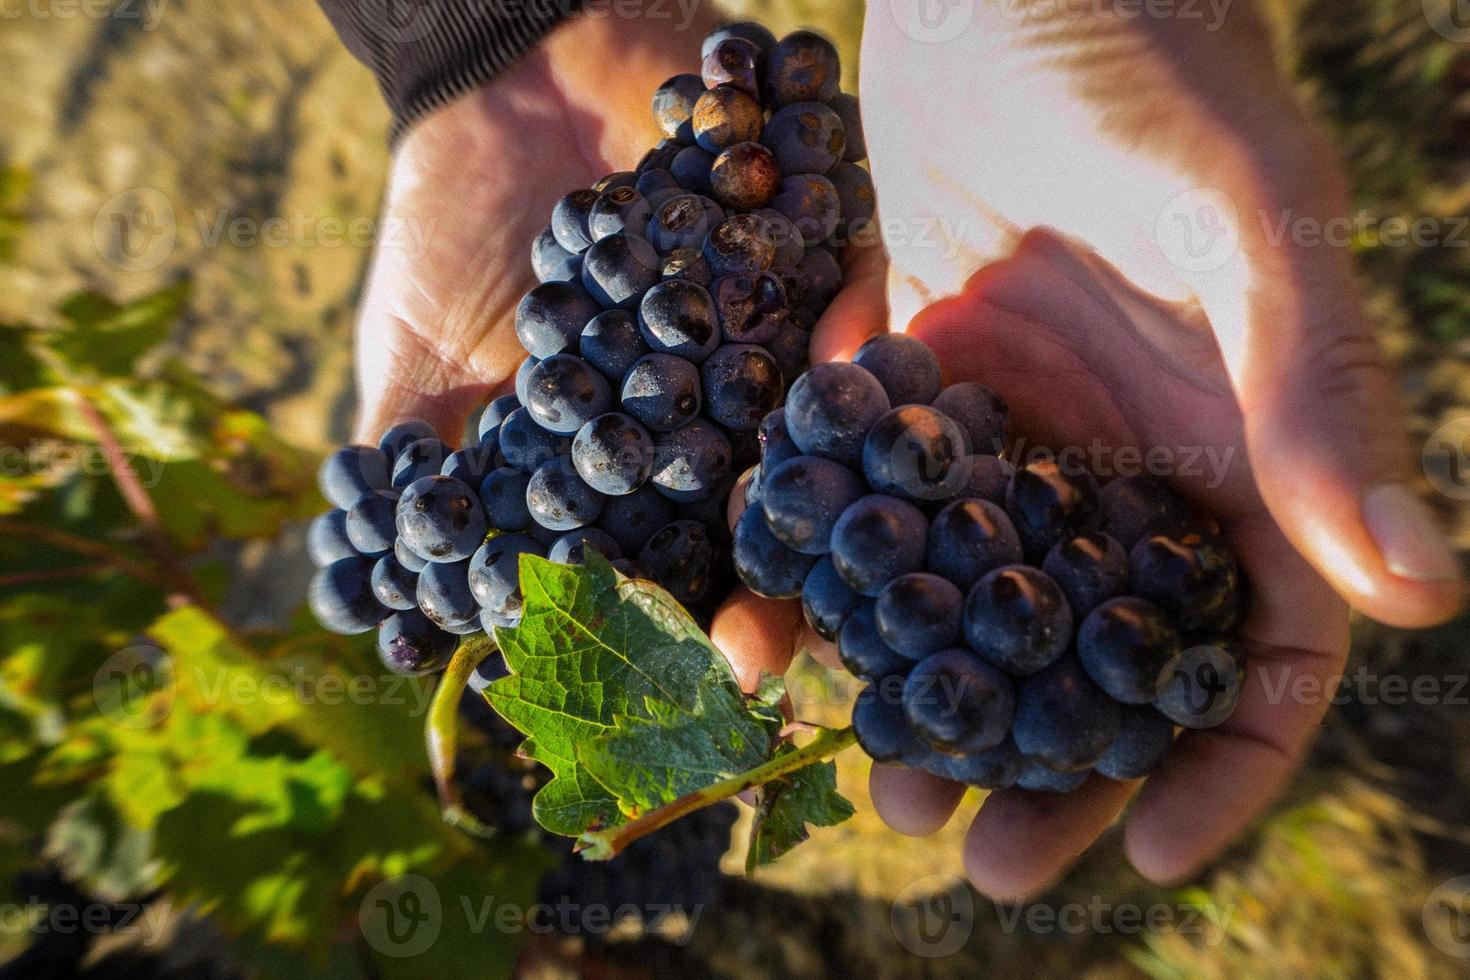 French Vineyard - Grapes in Hand photo